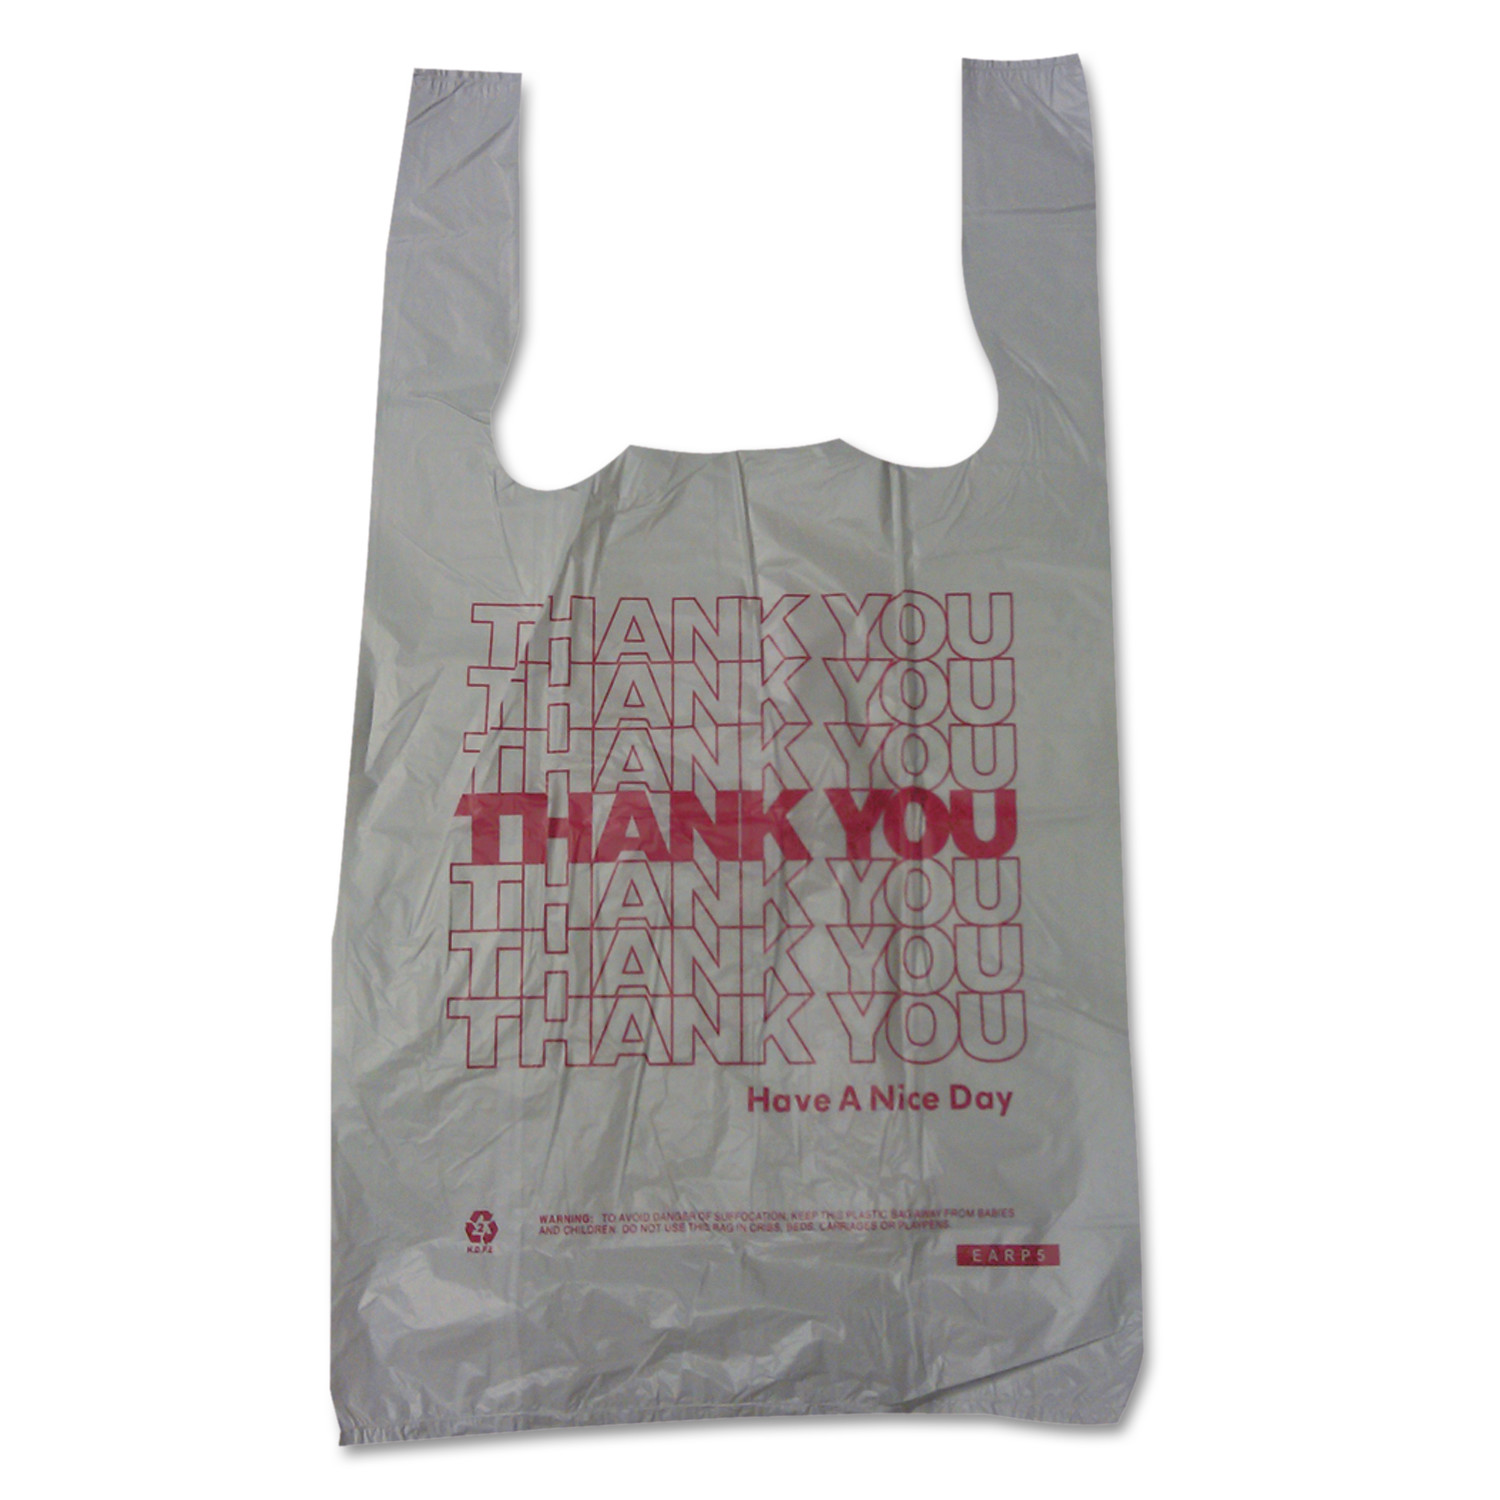 "Barnes Paper Company Plastic Thank You T-Sacks, 6"" x 4"" x 15"", 2 Mil, 2000 Bags"